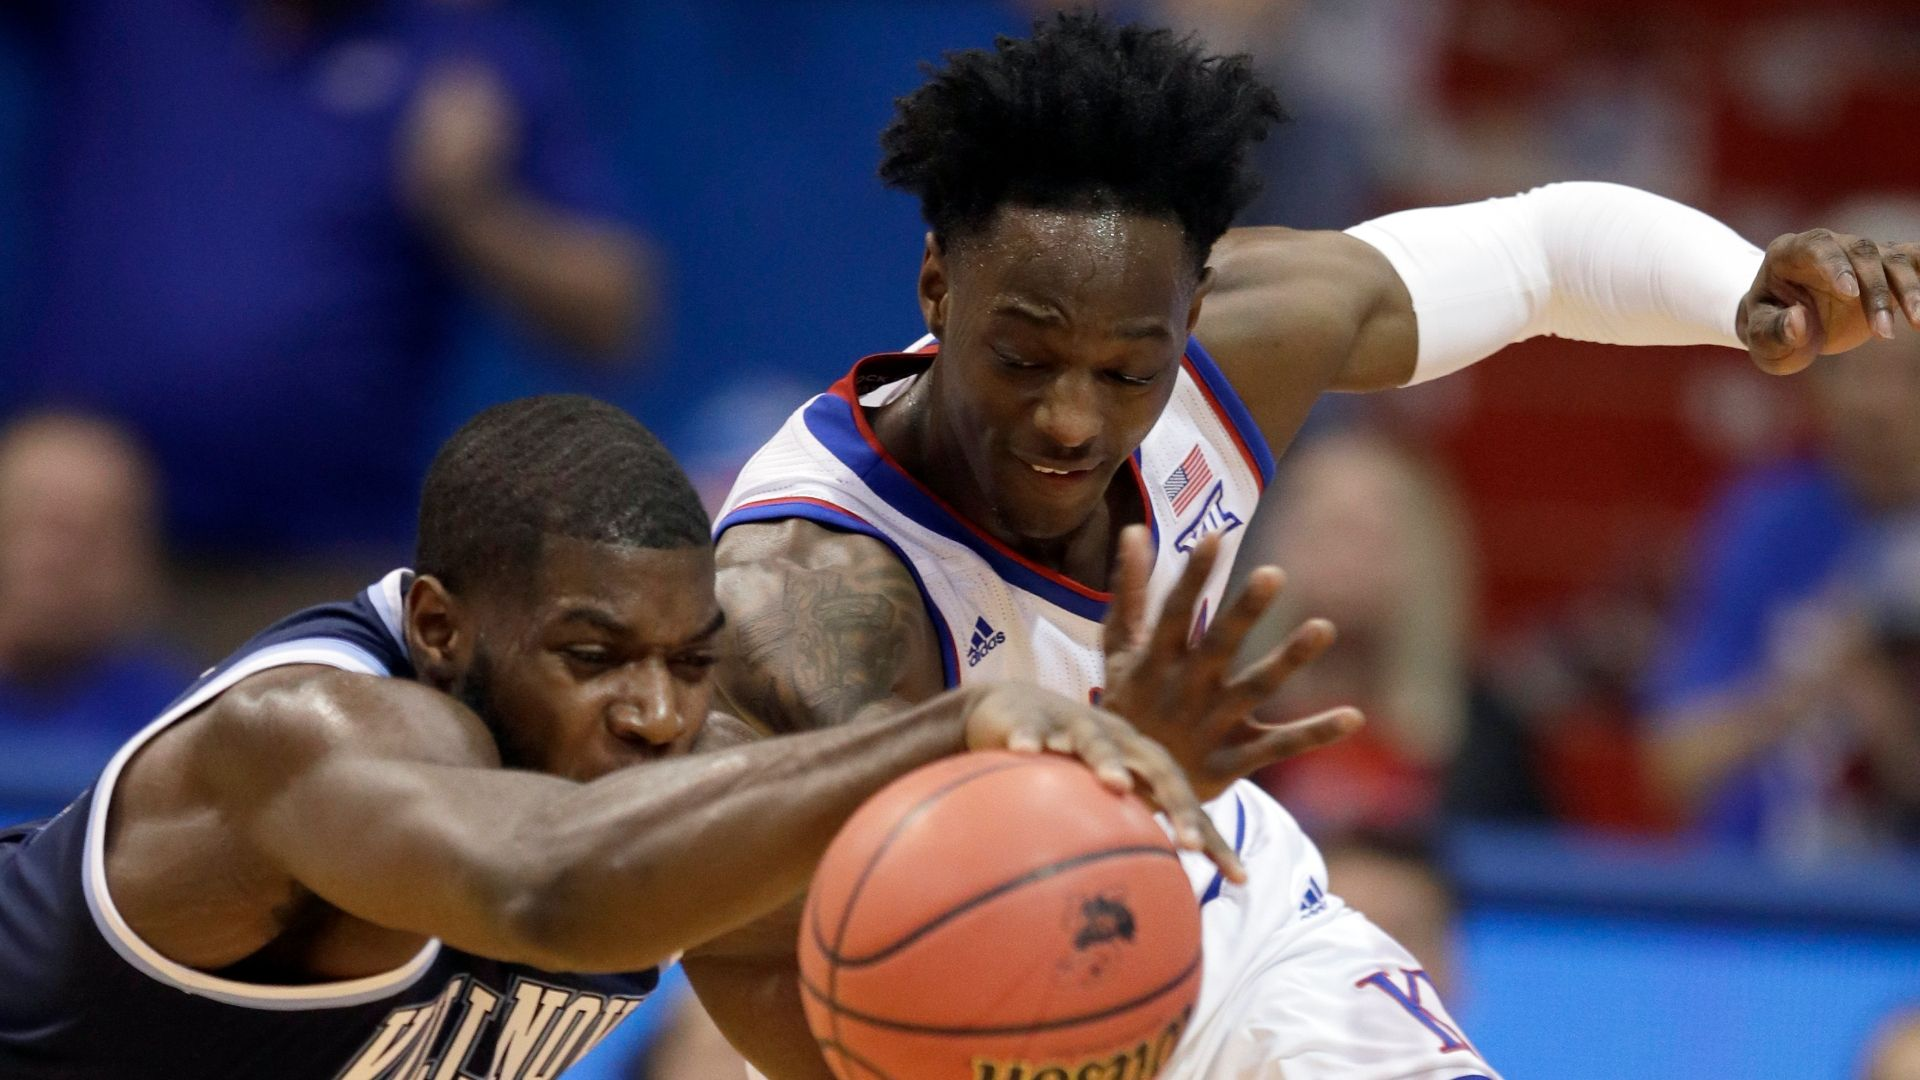 No. 1 Kansas holds off Nova in back-and-forth contest